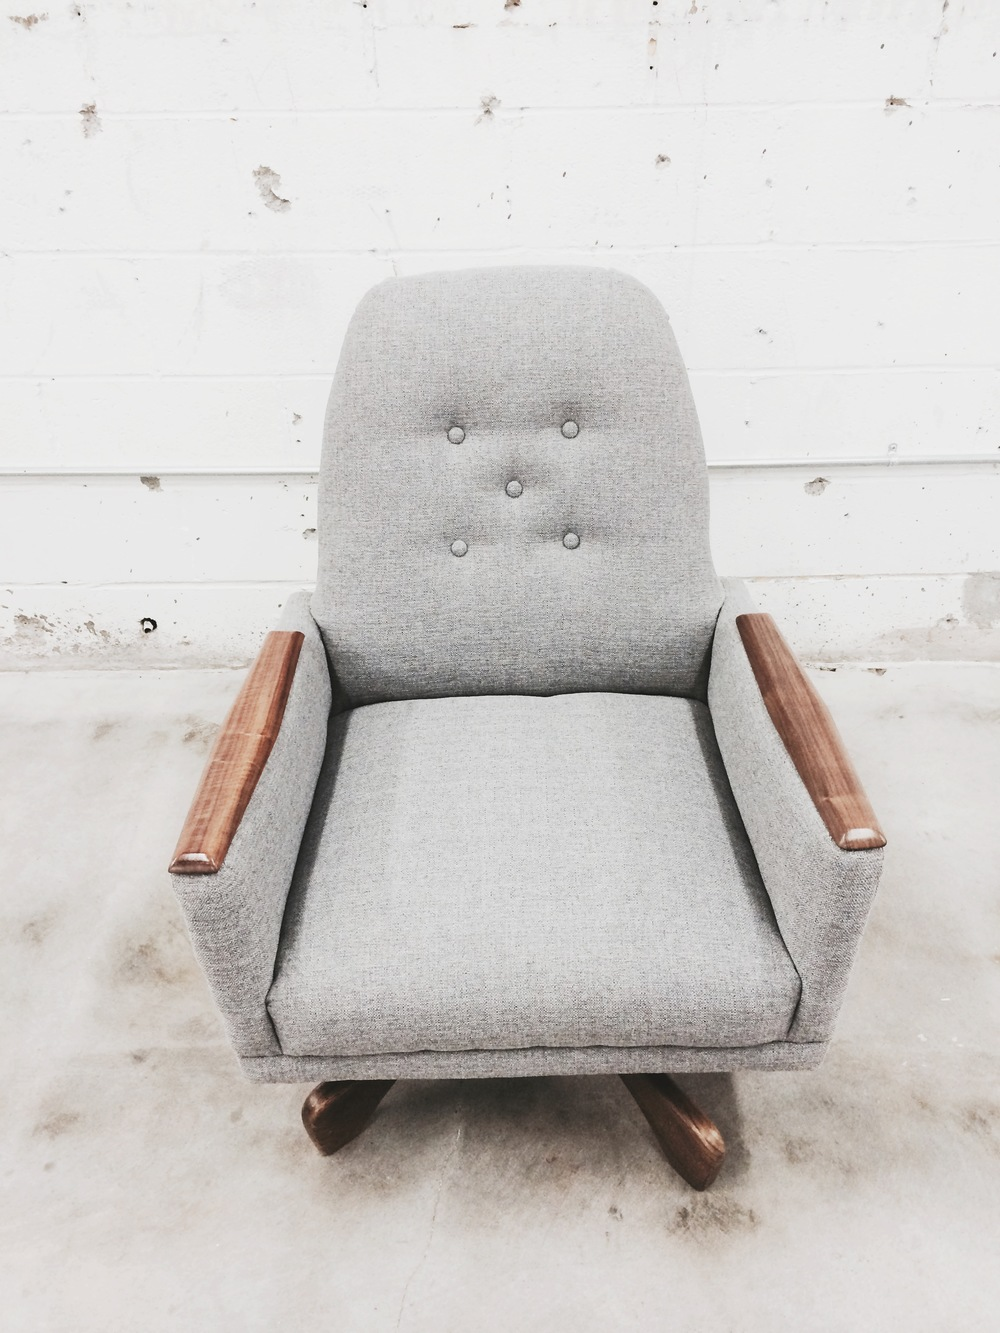 reupholsteredrockingchair.jpg